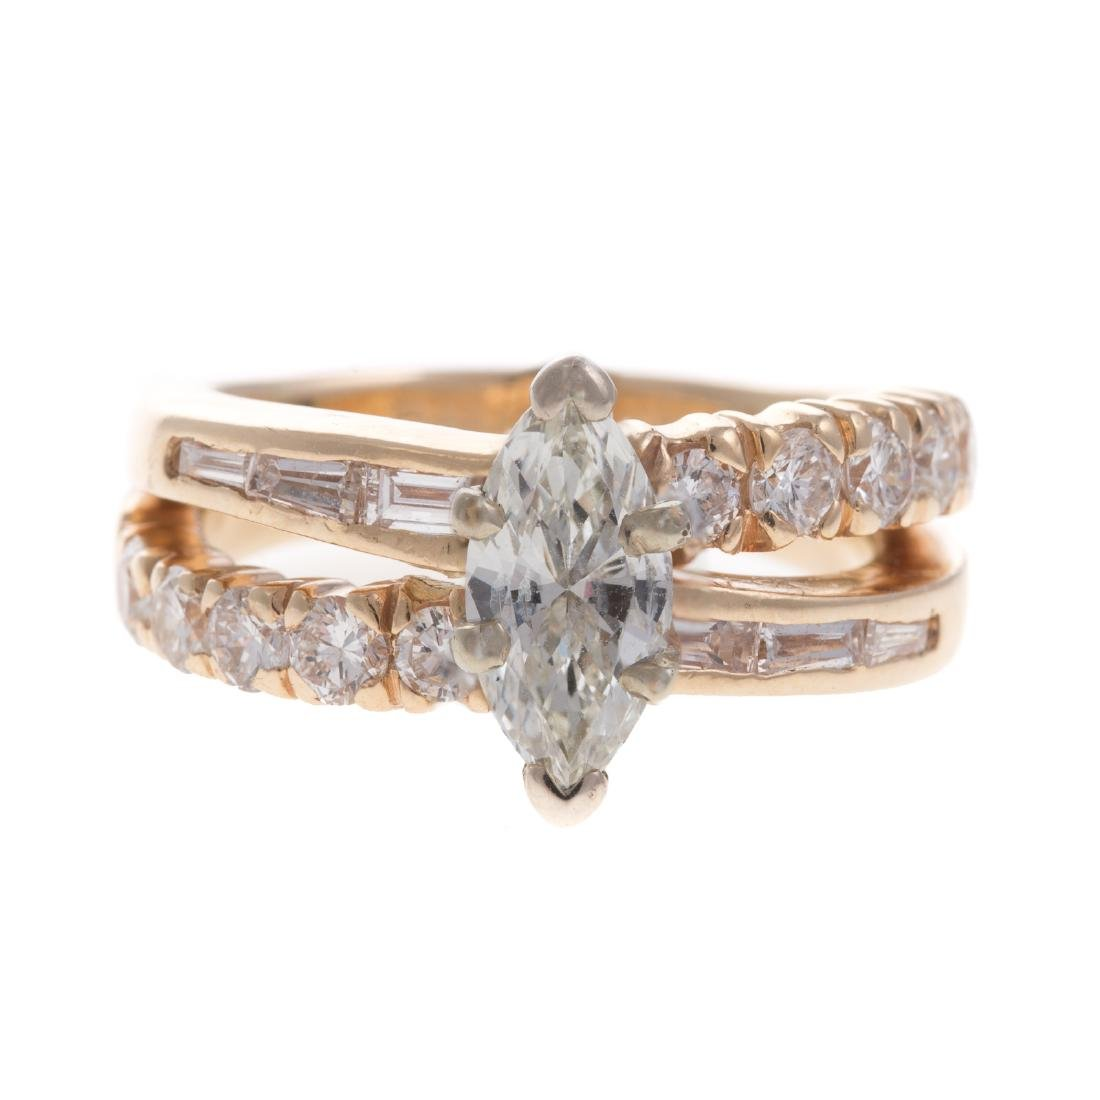 A Lady's Marquise Diamond Engagement Ring in 14K